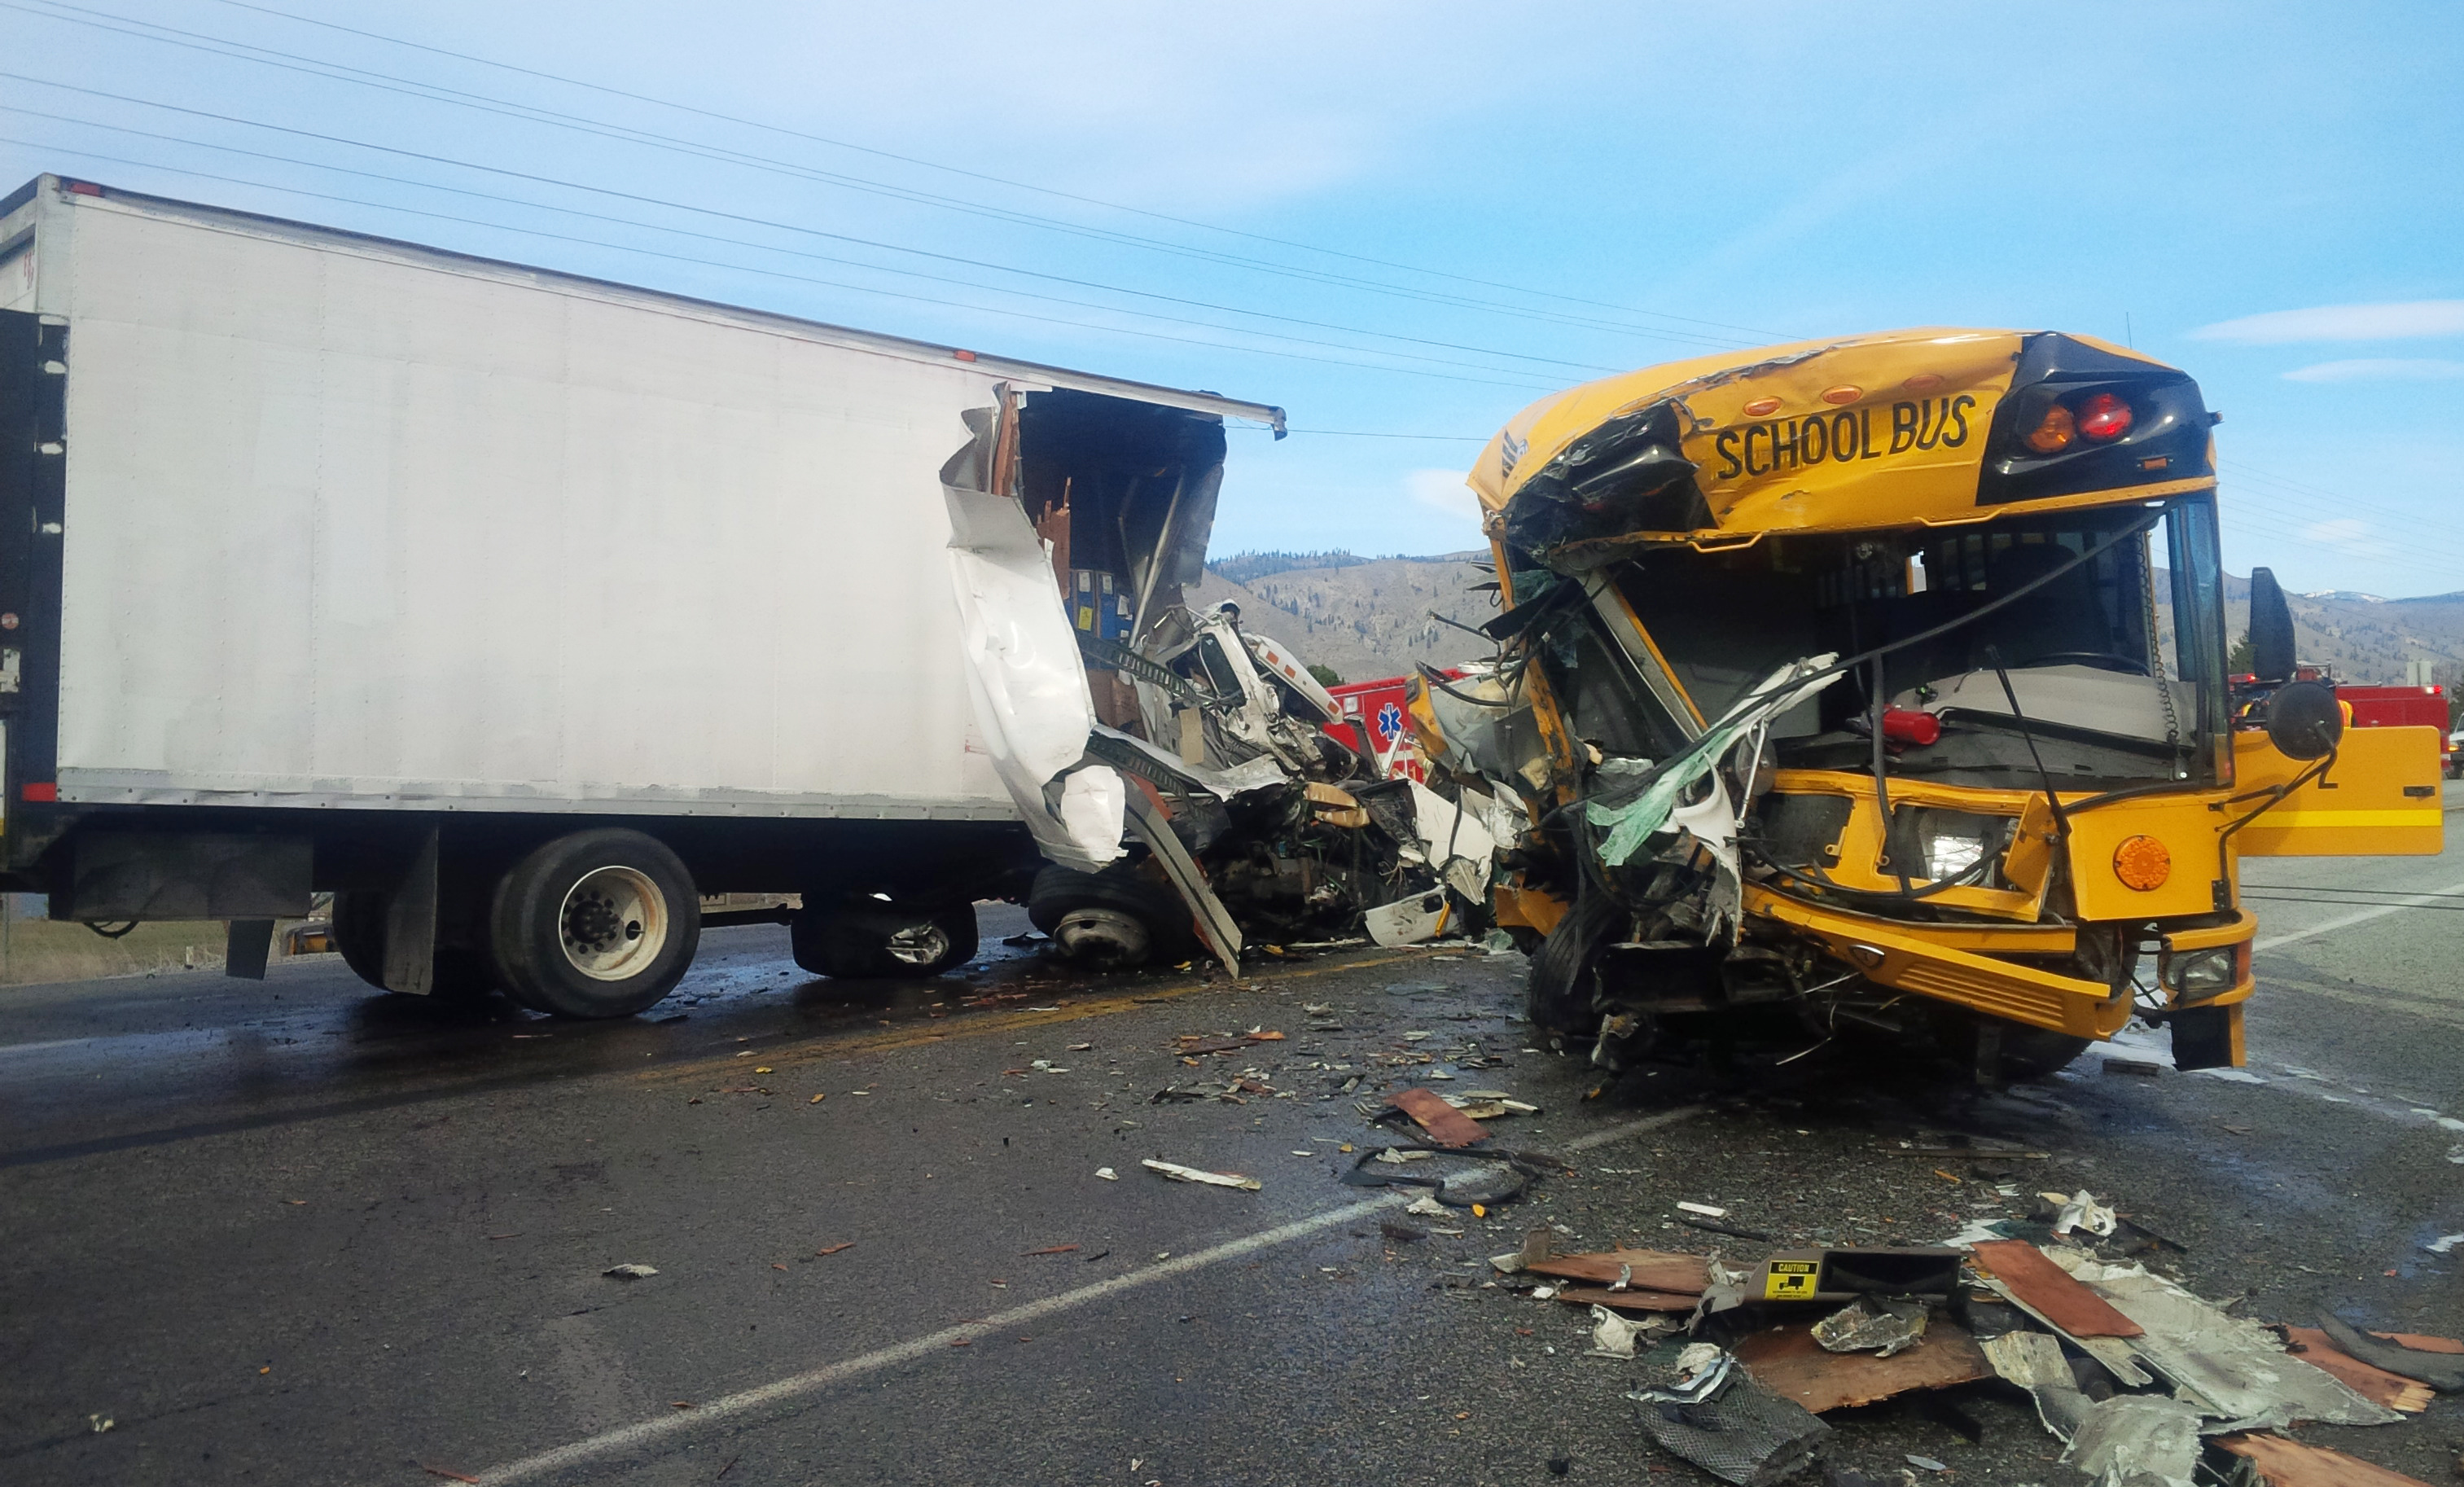 Highway Crash Kills One Injures Dozens The SpokesmanReview - Car shows in washington state